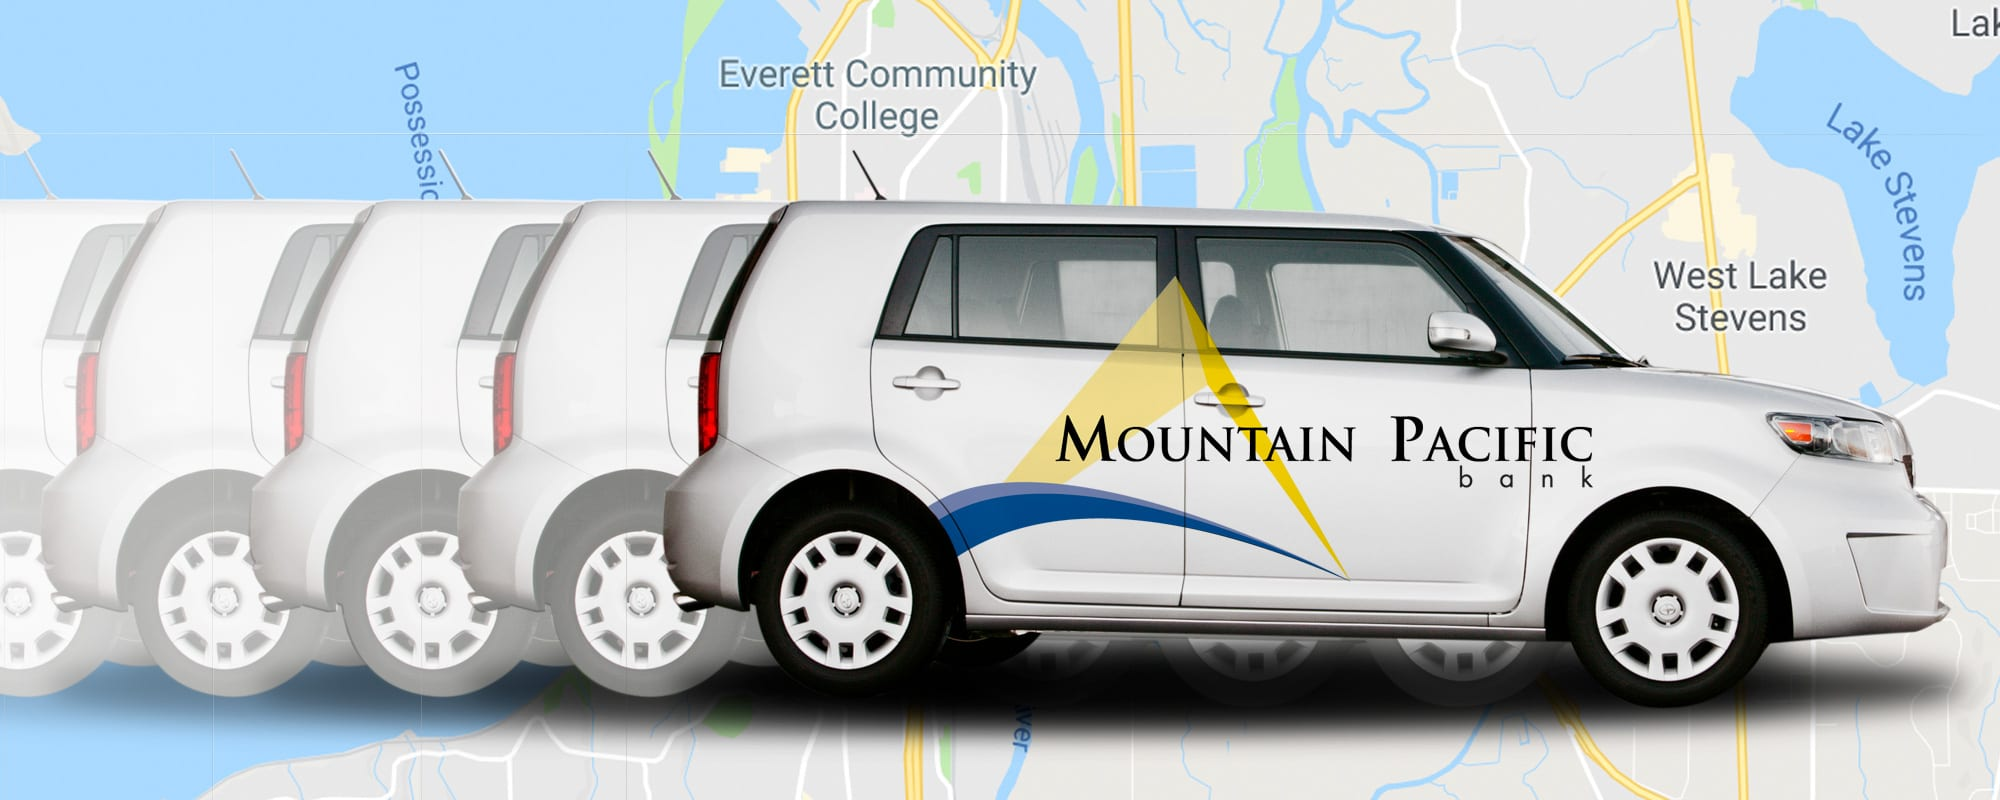 mountain pacific bank mobile branch car with map of being it